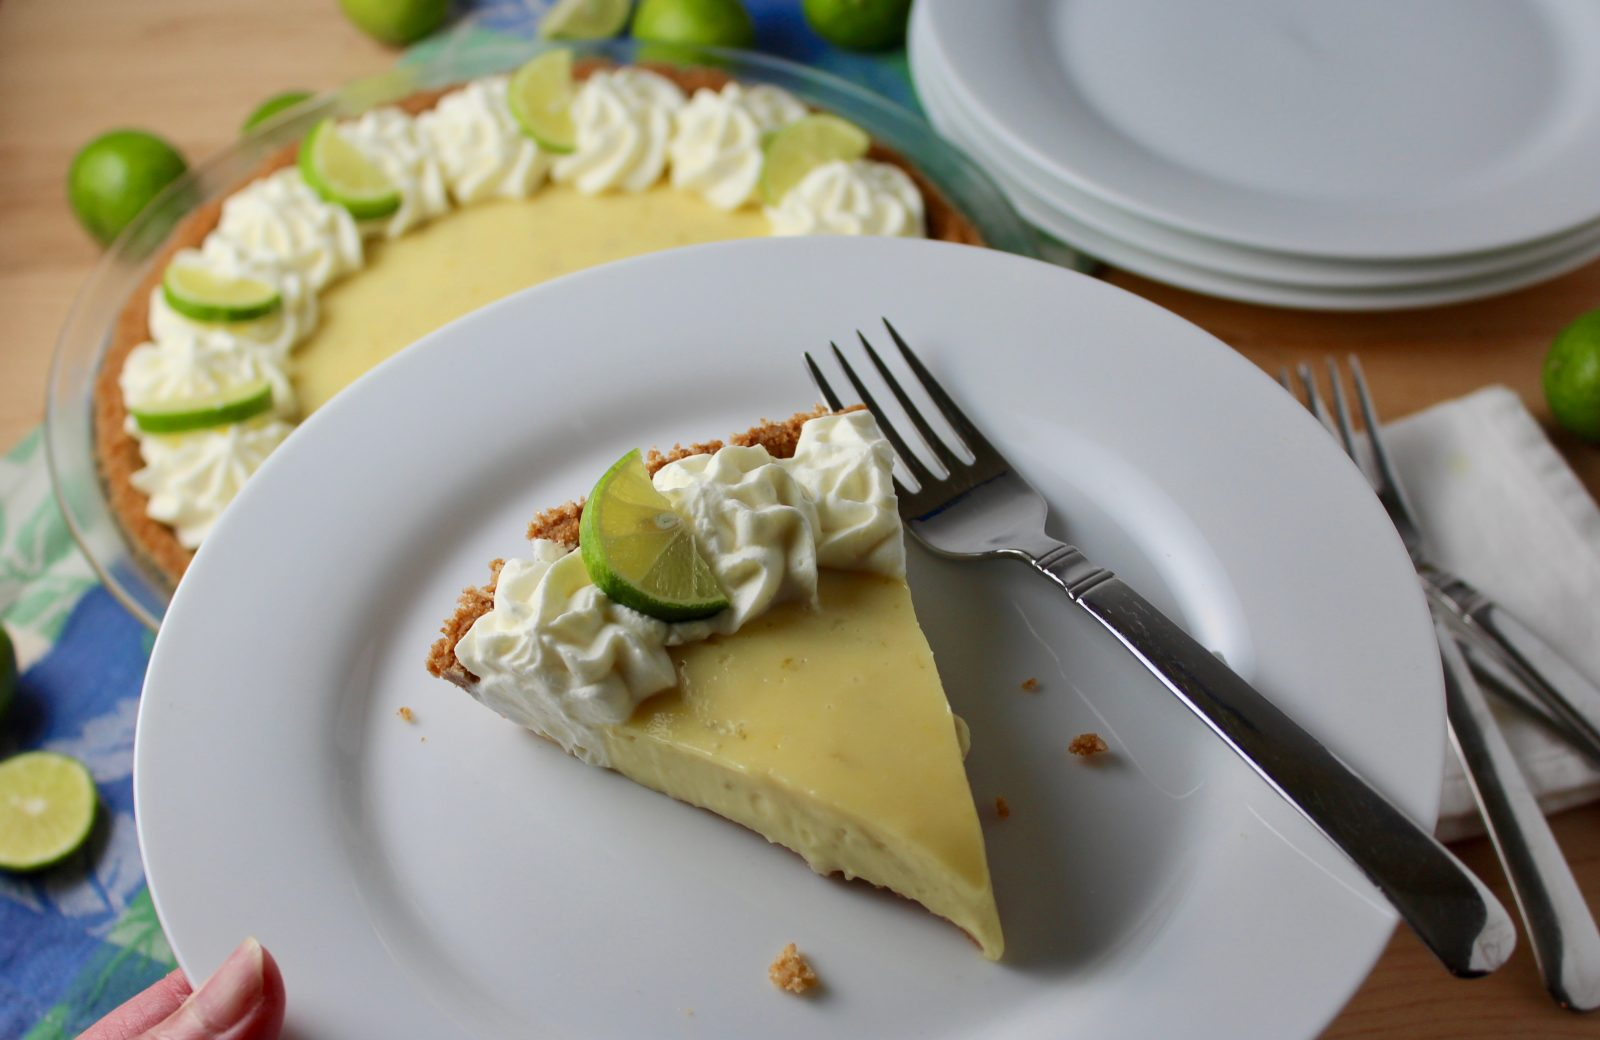 close up of slice of key lime pie on white plate.  Decorated with whipped cream rosettes and key lime slices